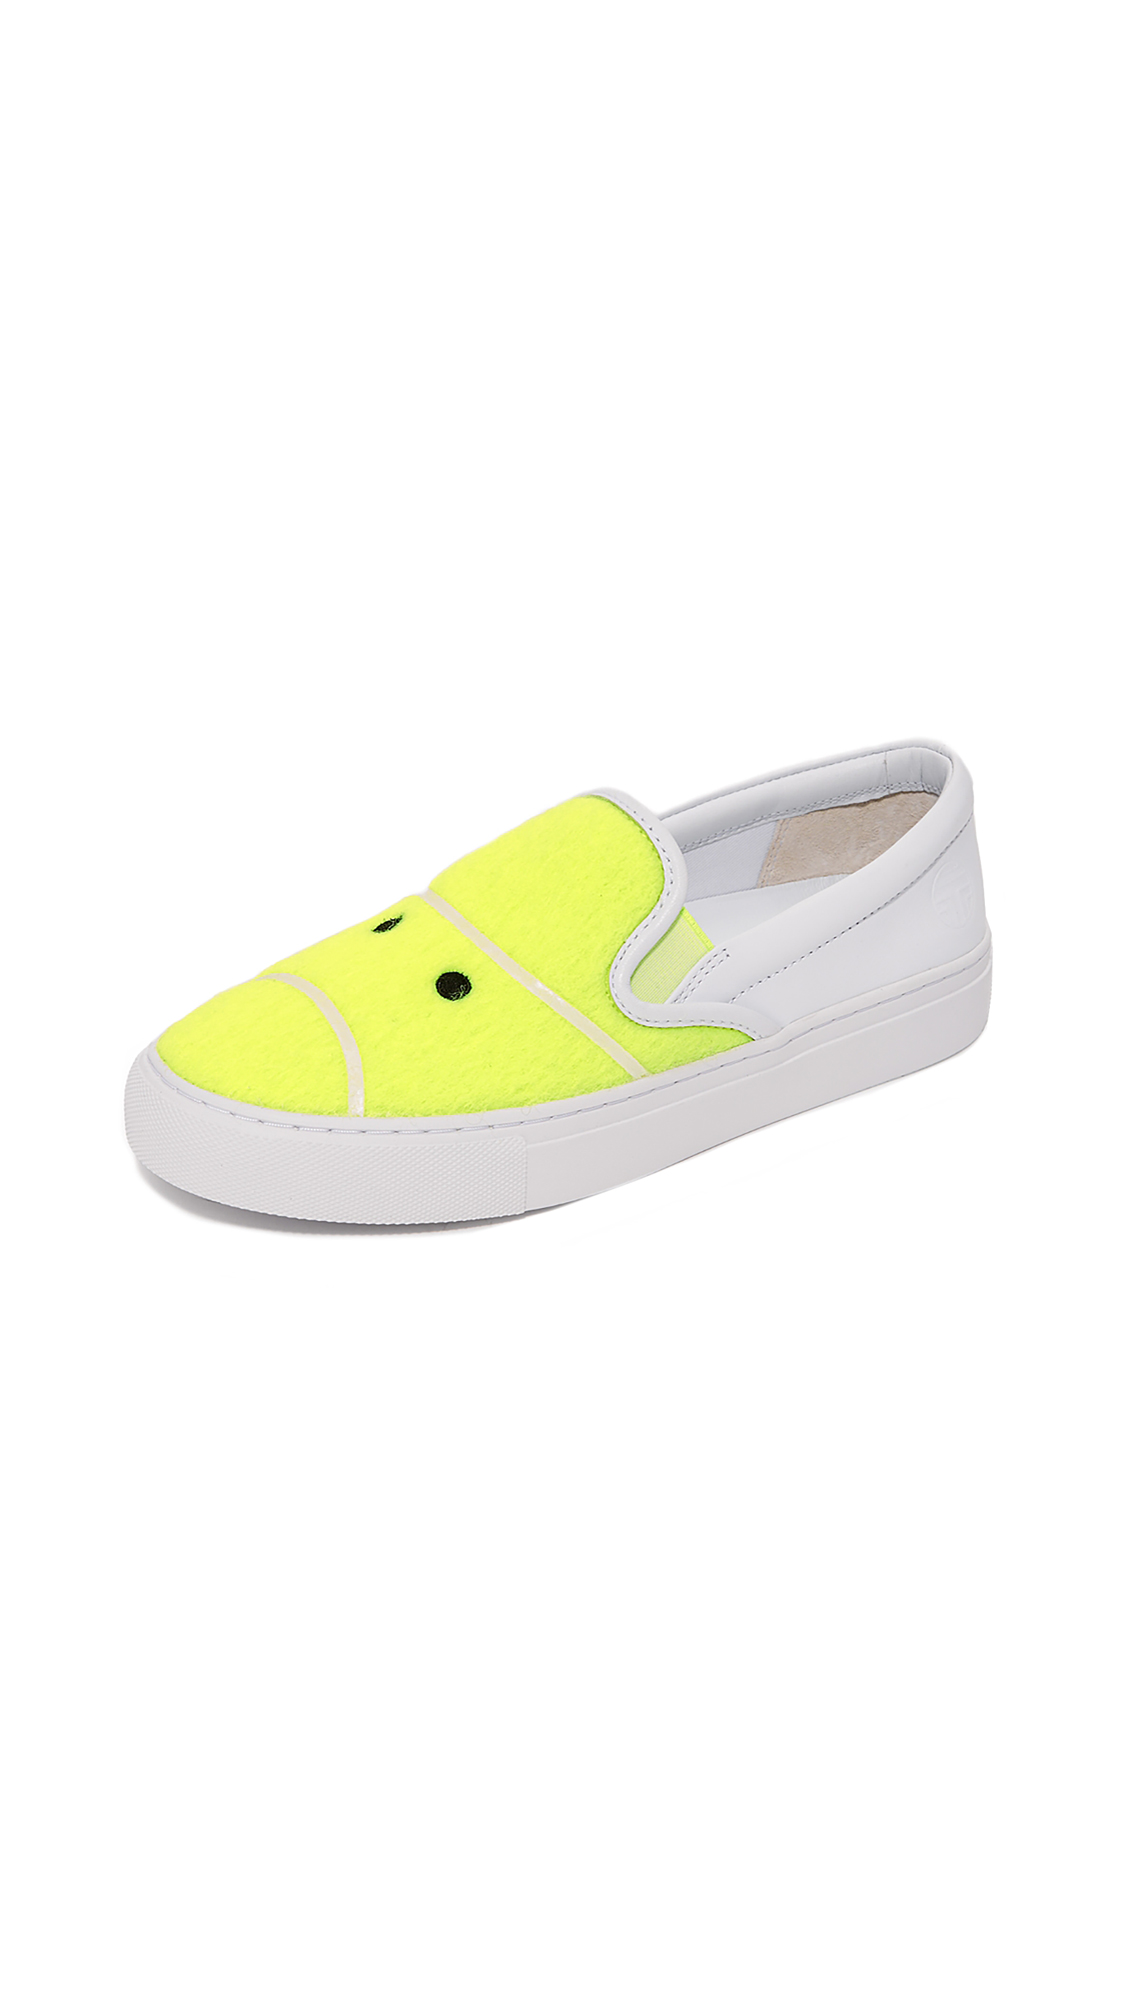 Tory Sport Tennis Felt Sneakers - Fluo Yellow/Snow White